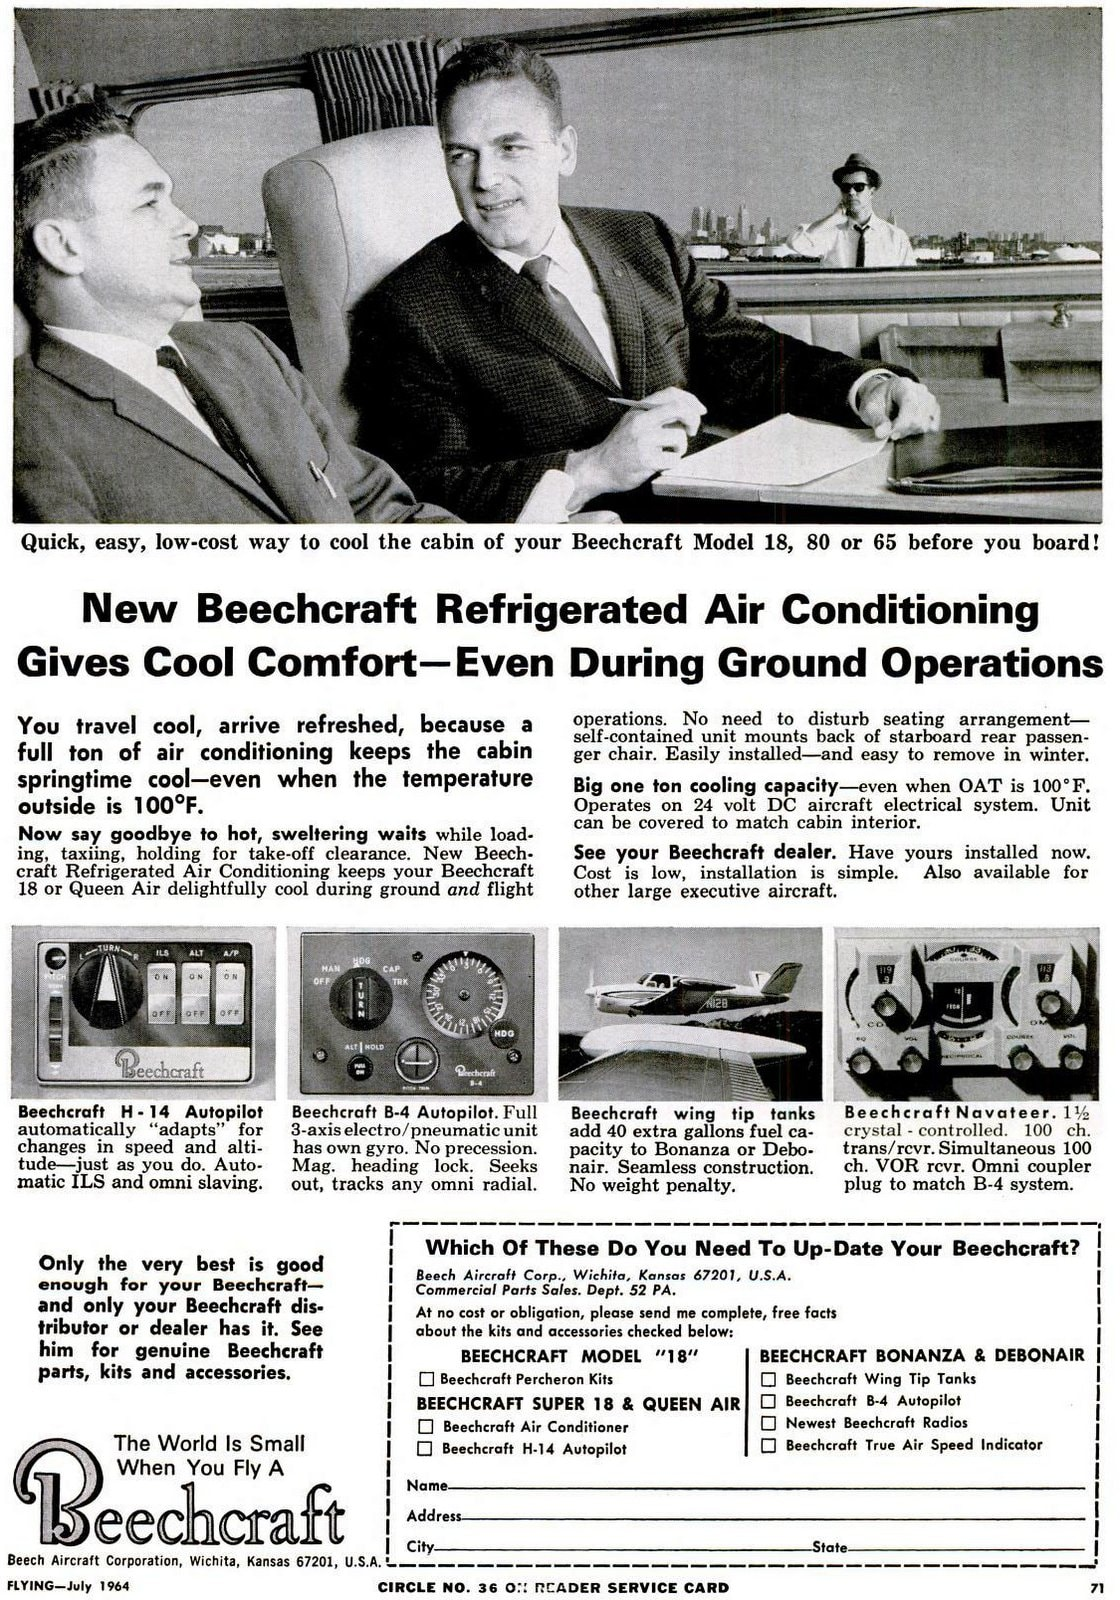 Classic 1960s Beechcraft propeller planes from with air conditioning (1963)